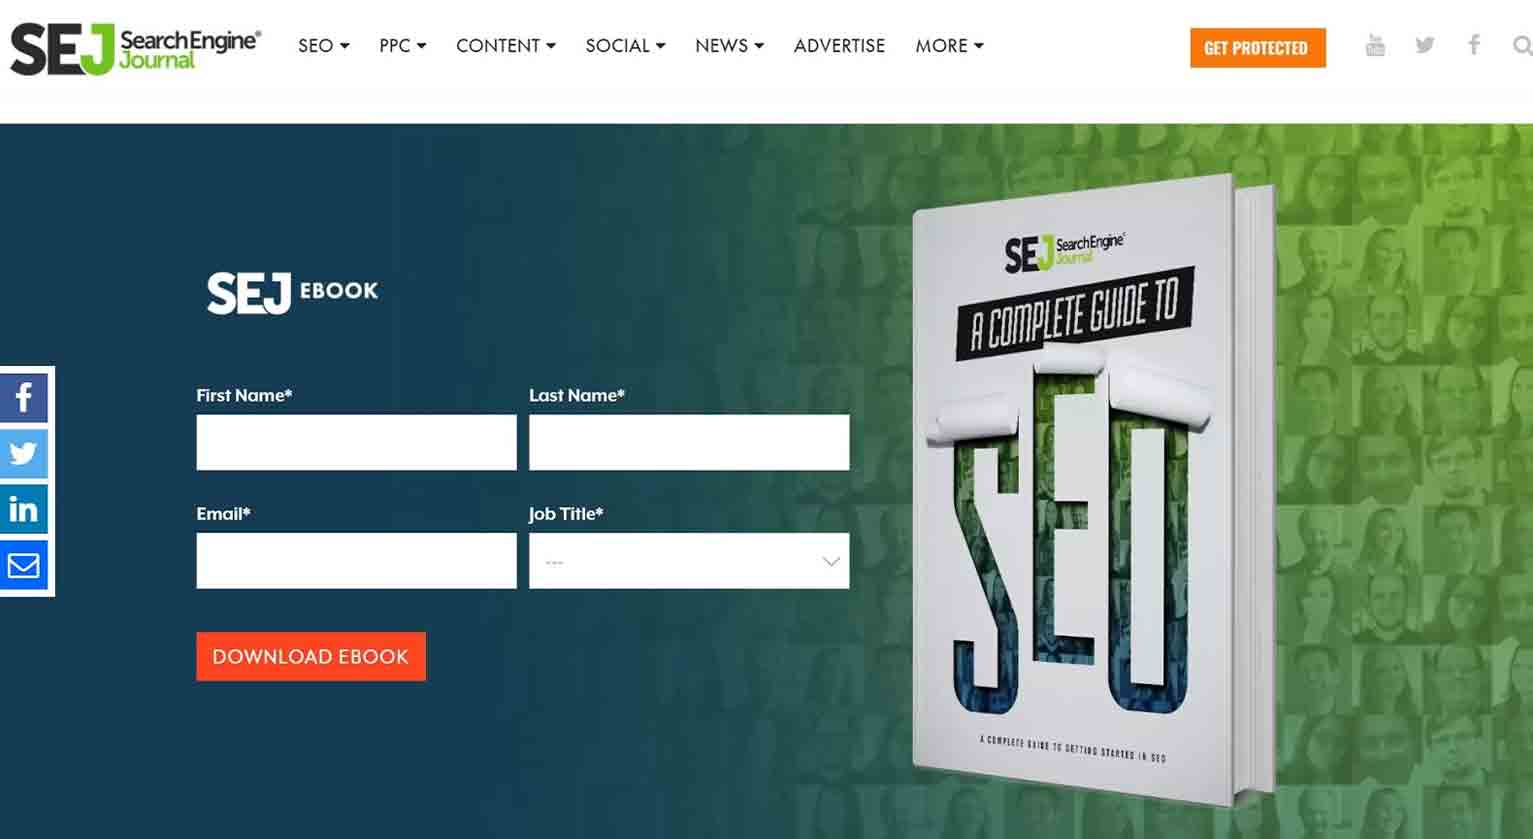 """Search Engine Journal's book """"A Complete Guide To SEO"""" requires readers to provide their name, email, and job title to download the content."""